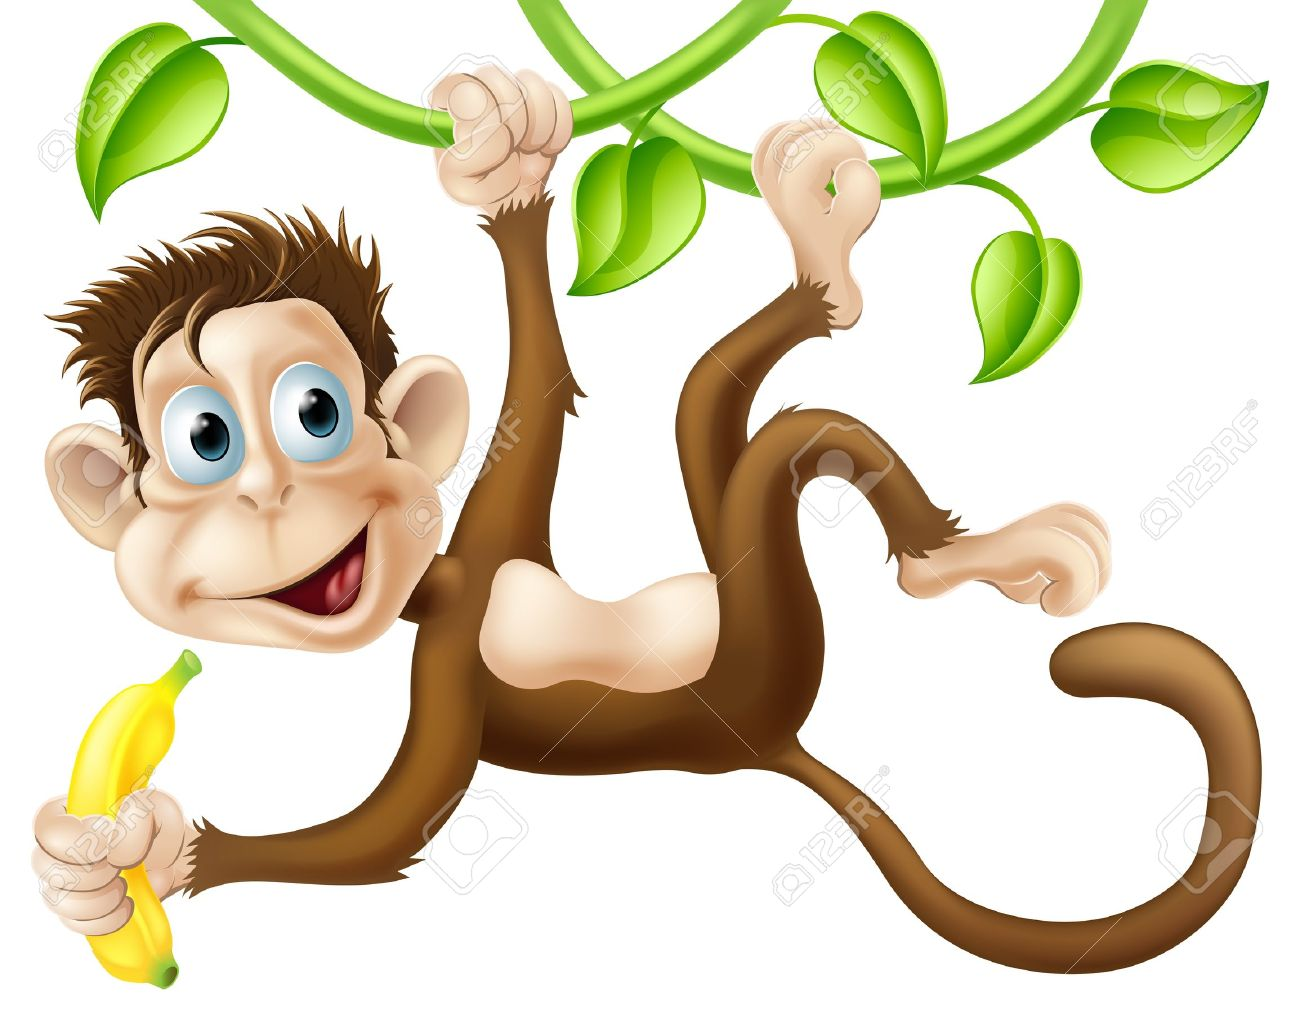 1300x1022 A Cute Monkey Swinging From Vines With A Banana In His Hand